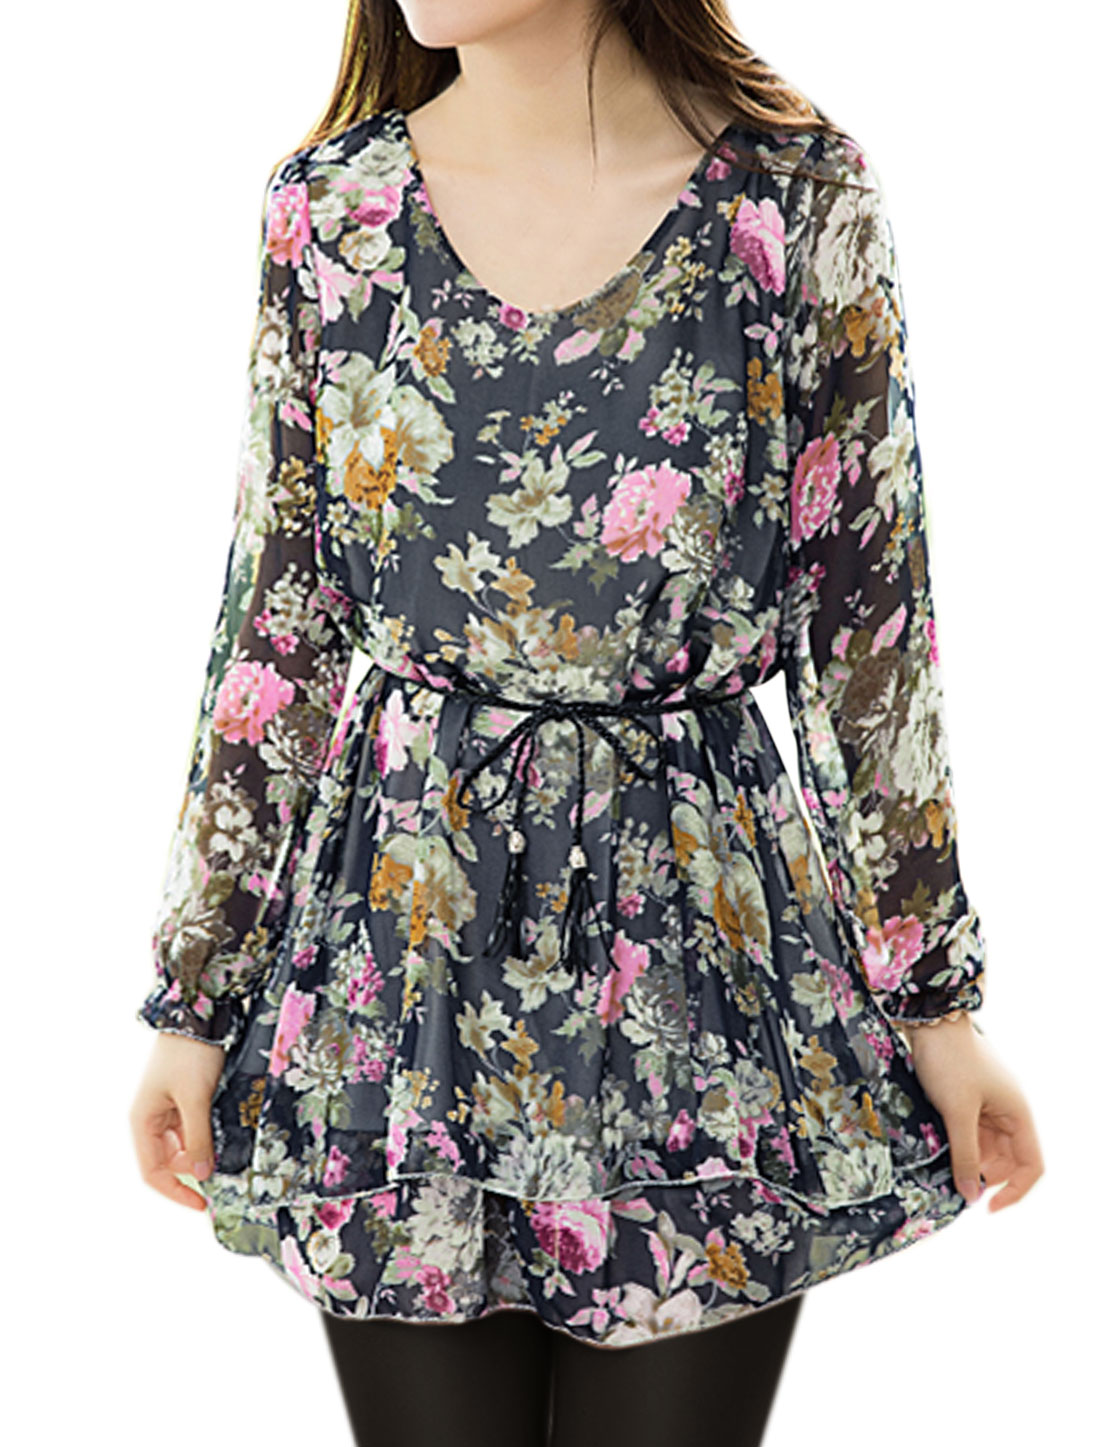 Women Scoop Neck Layered Tunic Floral Top w Waist String Blue S